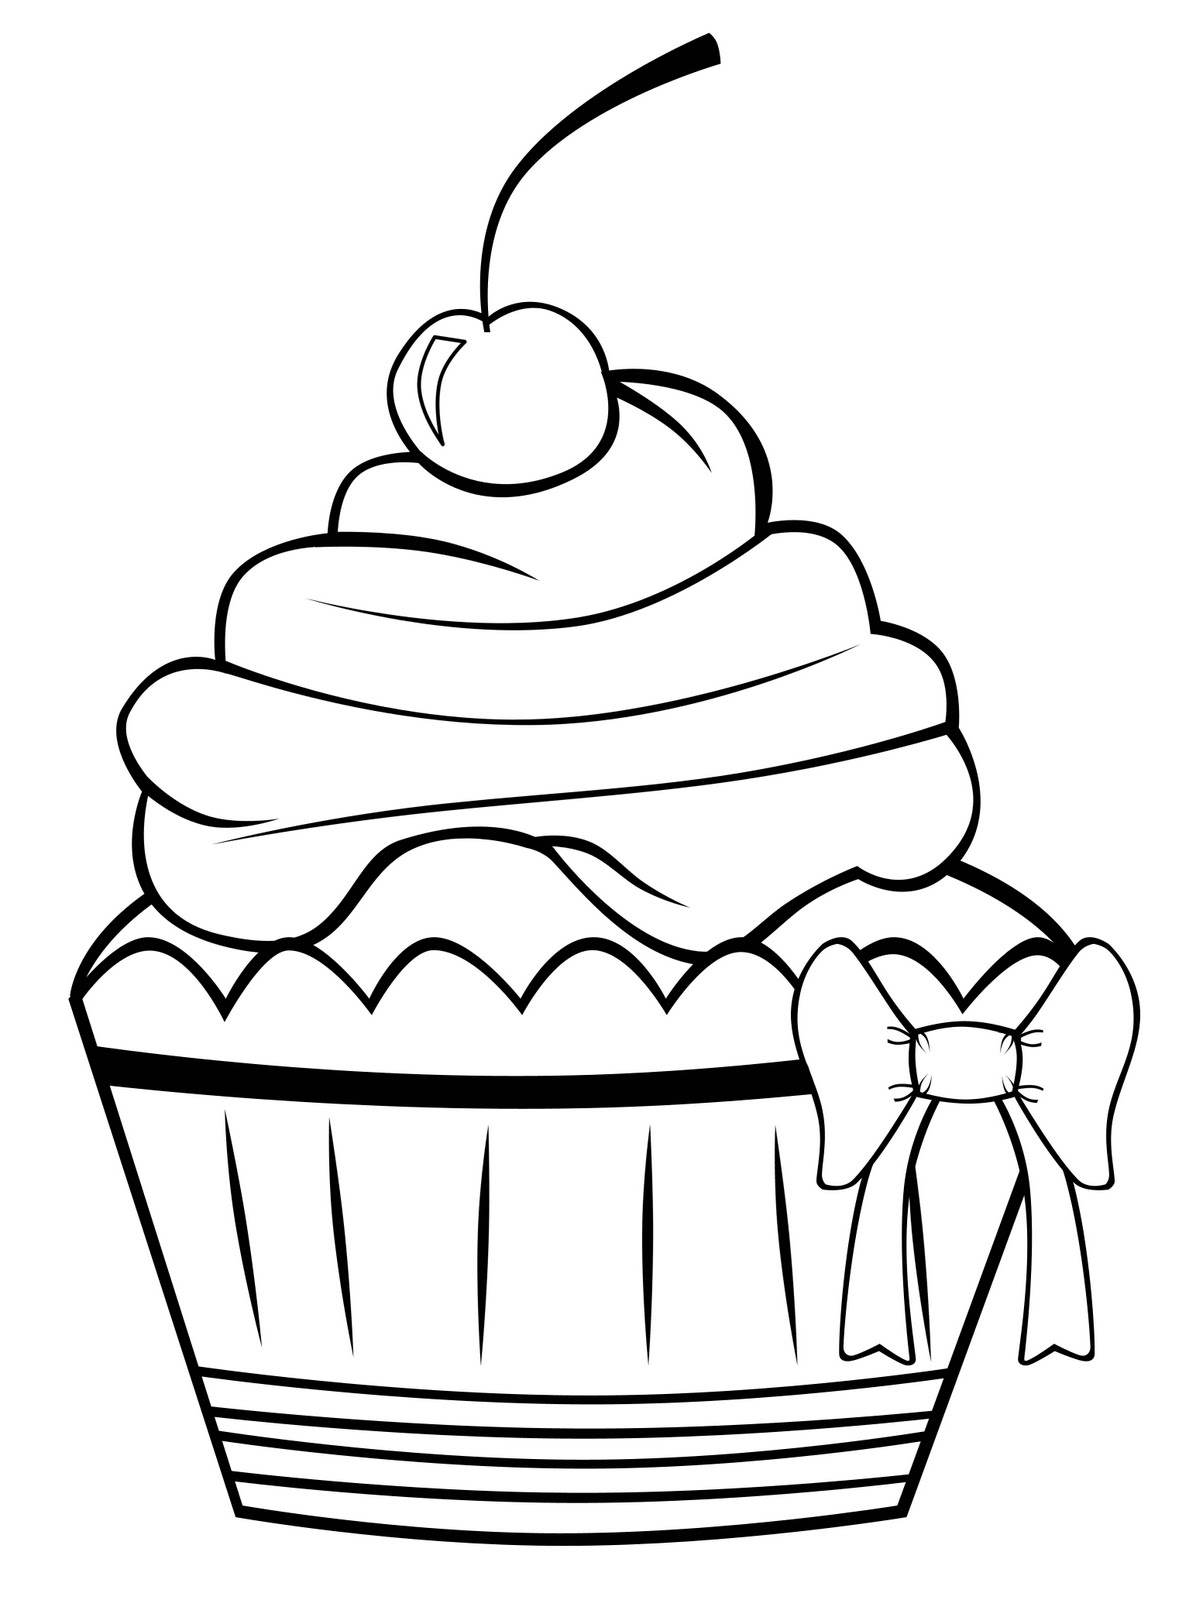 Free Cupcake Outline Download Free Clip Art Free Clip